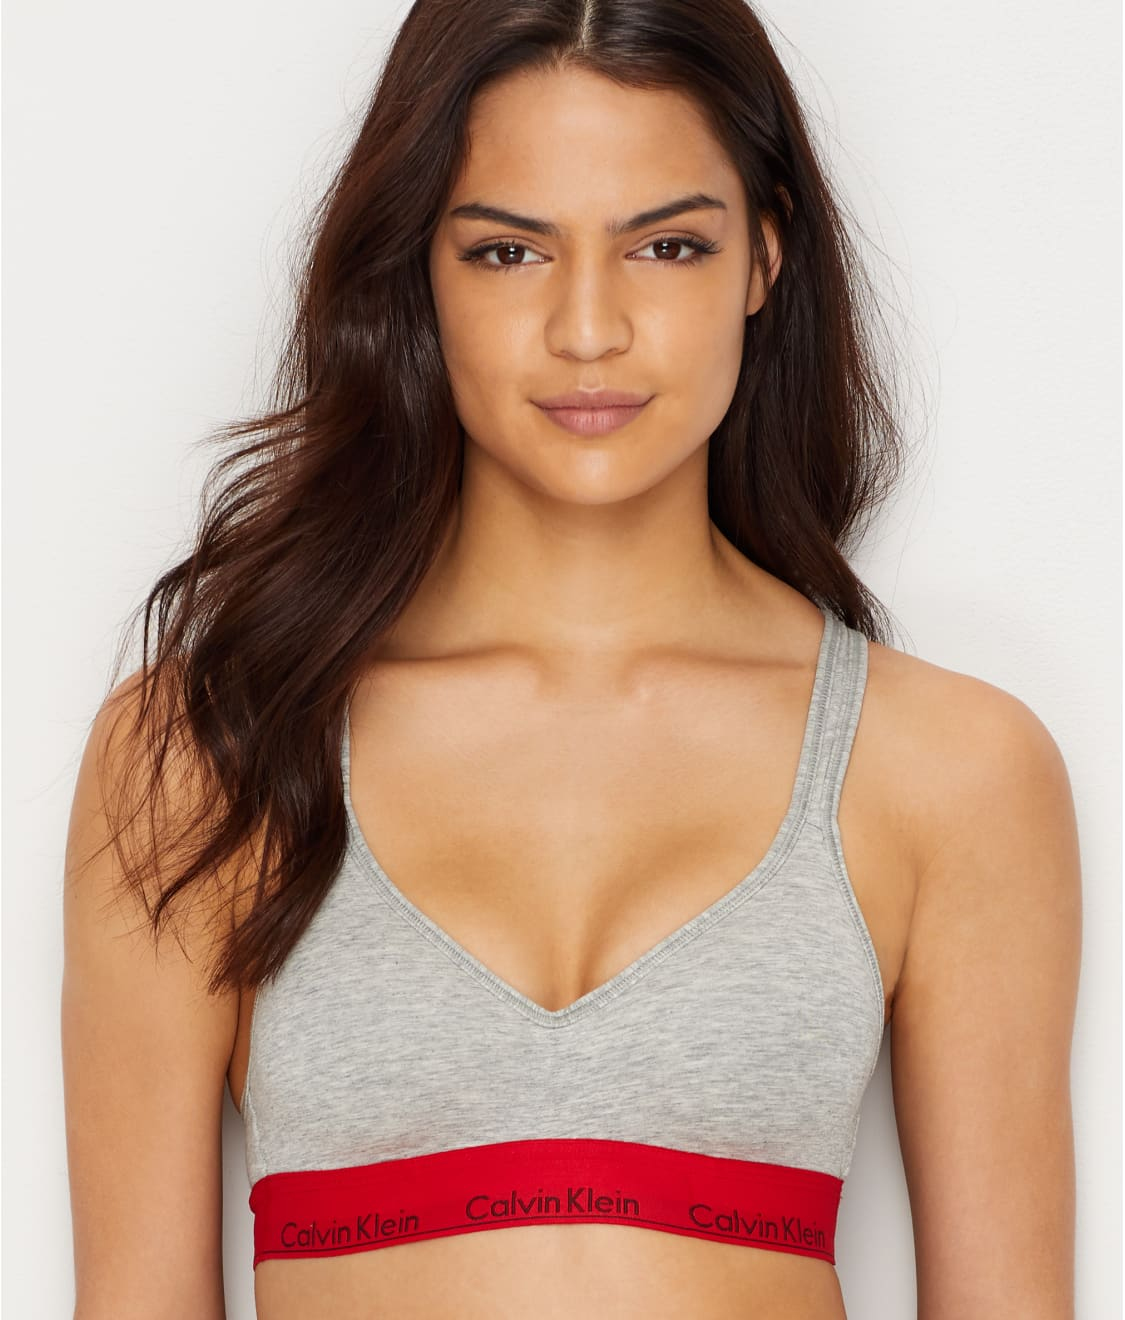 667efaecd2 See Modern Cotton Padded Bralette in Grey Heather   Red